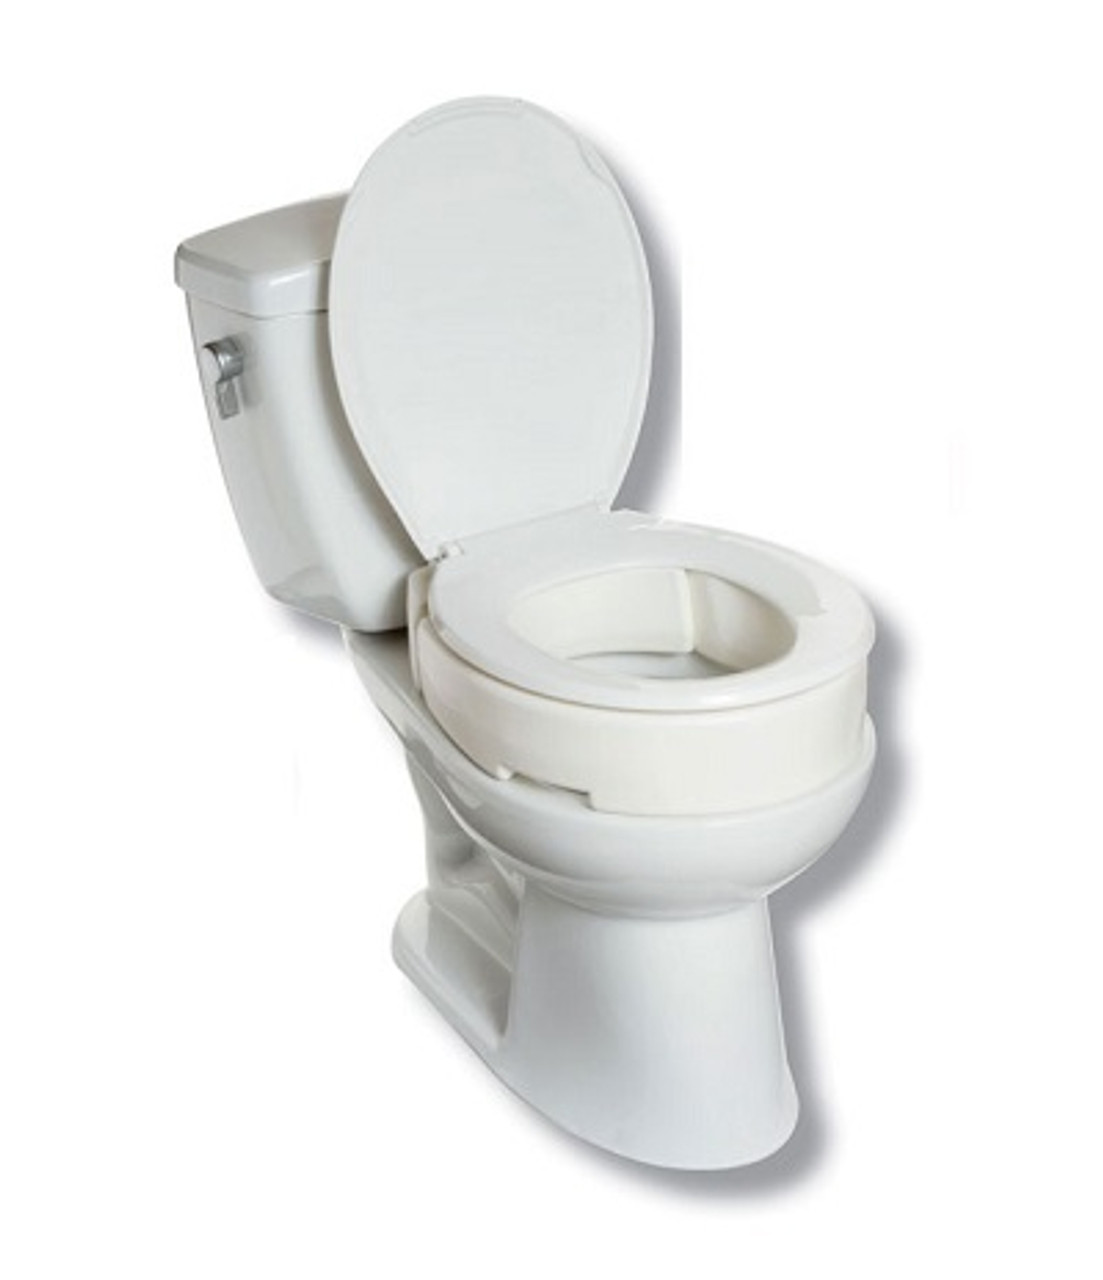 Magnificent Mobb Hinged Raised Toilet Seat Andrewgaddart Wooden Chair Designs For Living Room Andrewgaddartcom